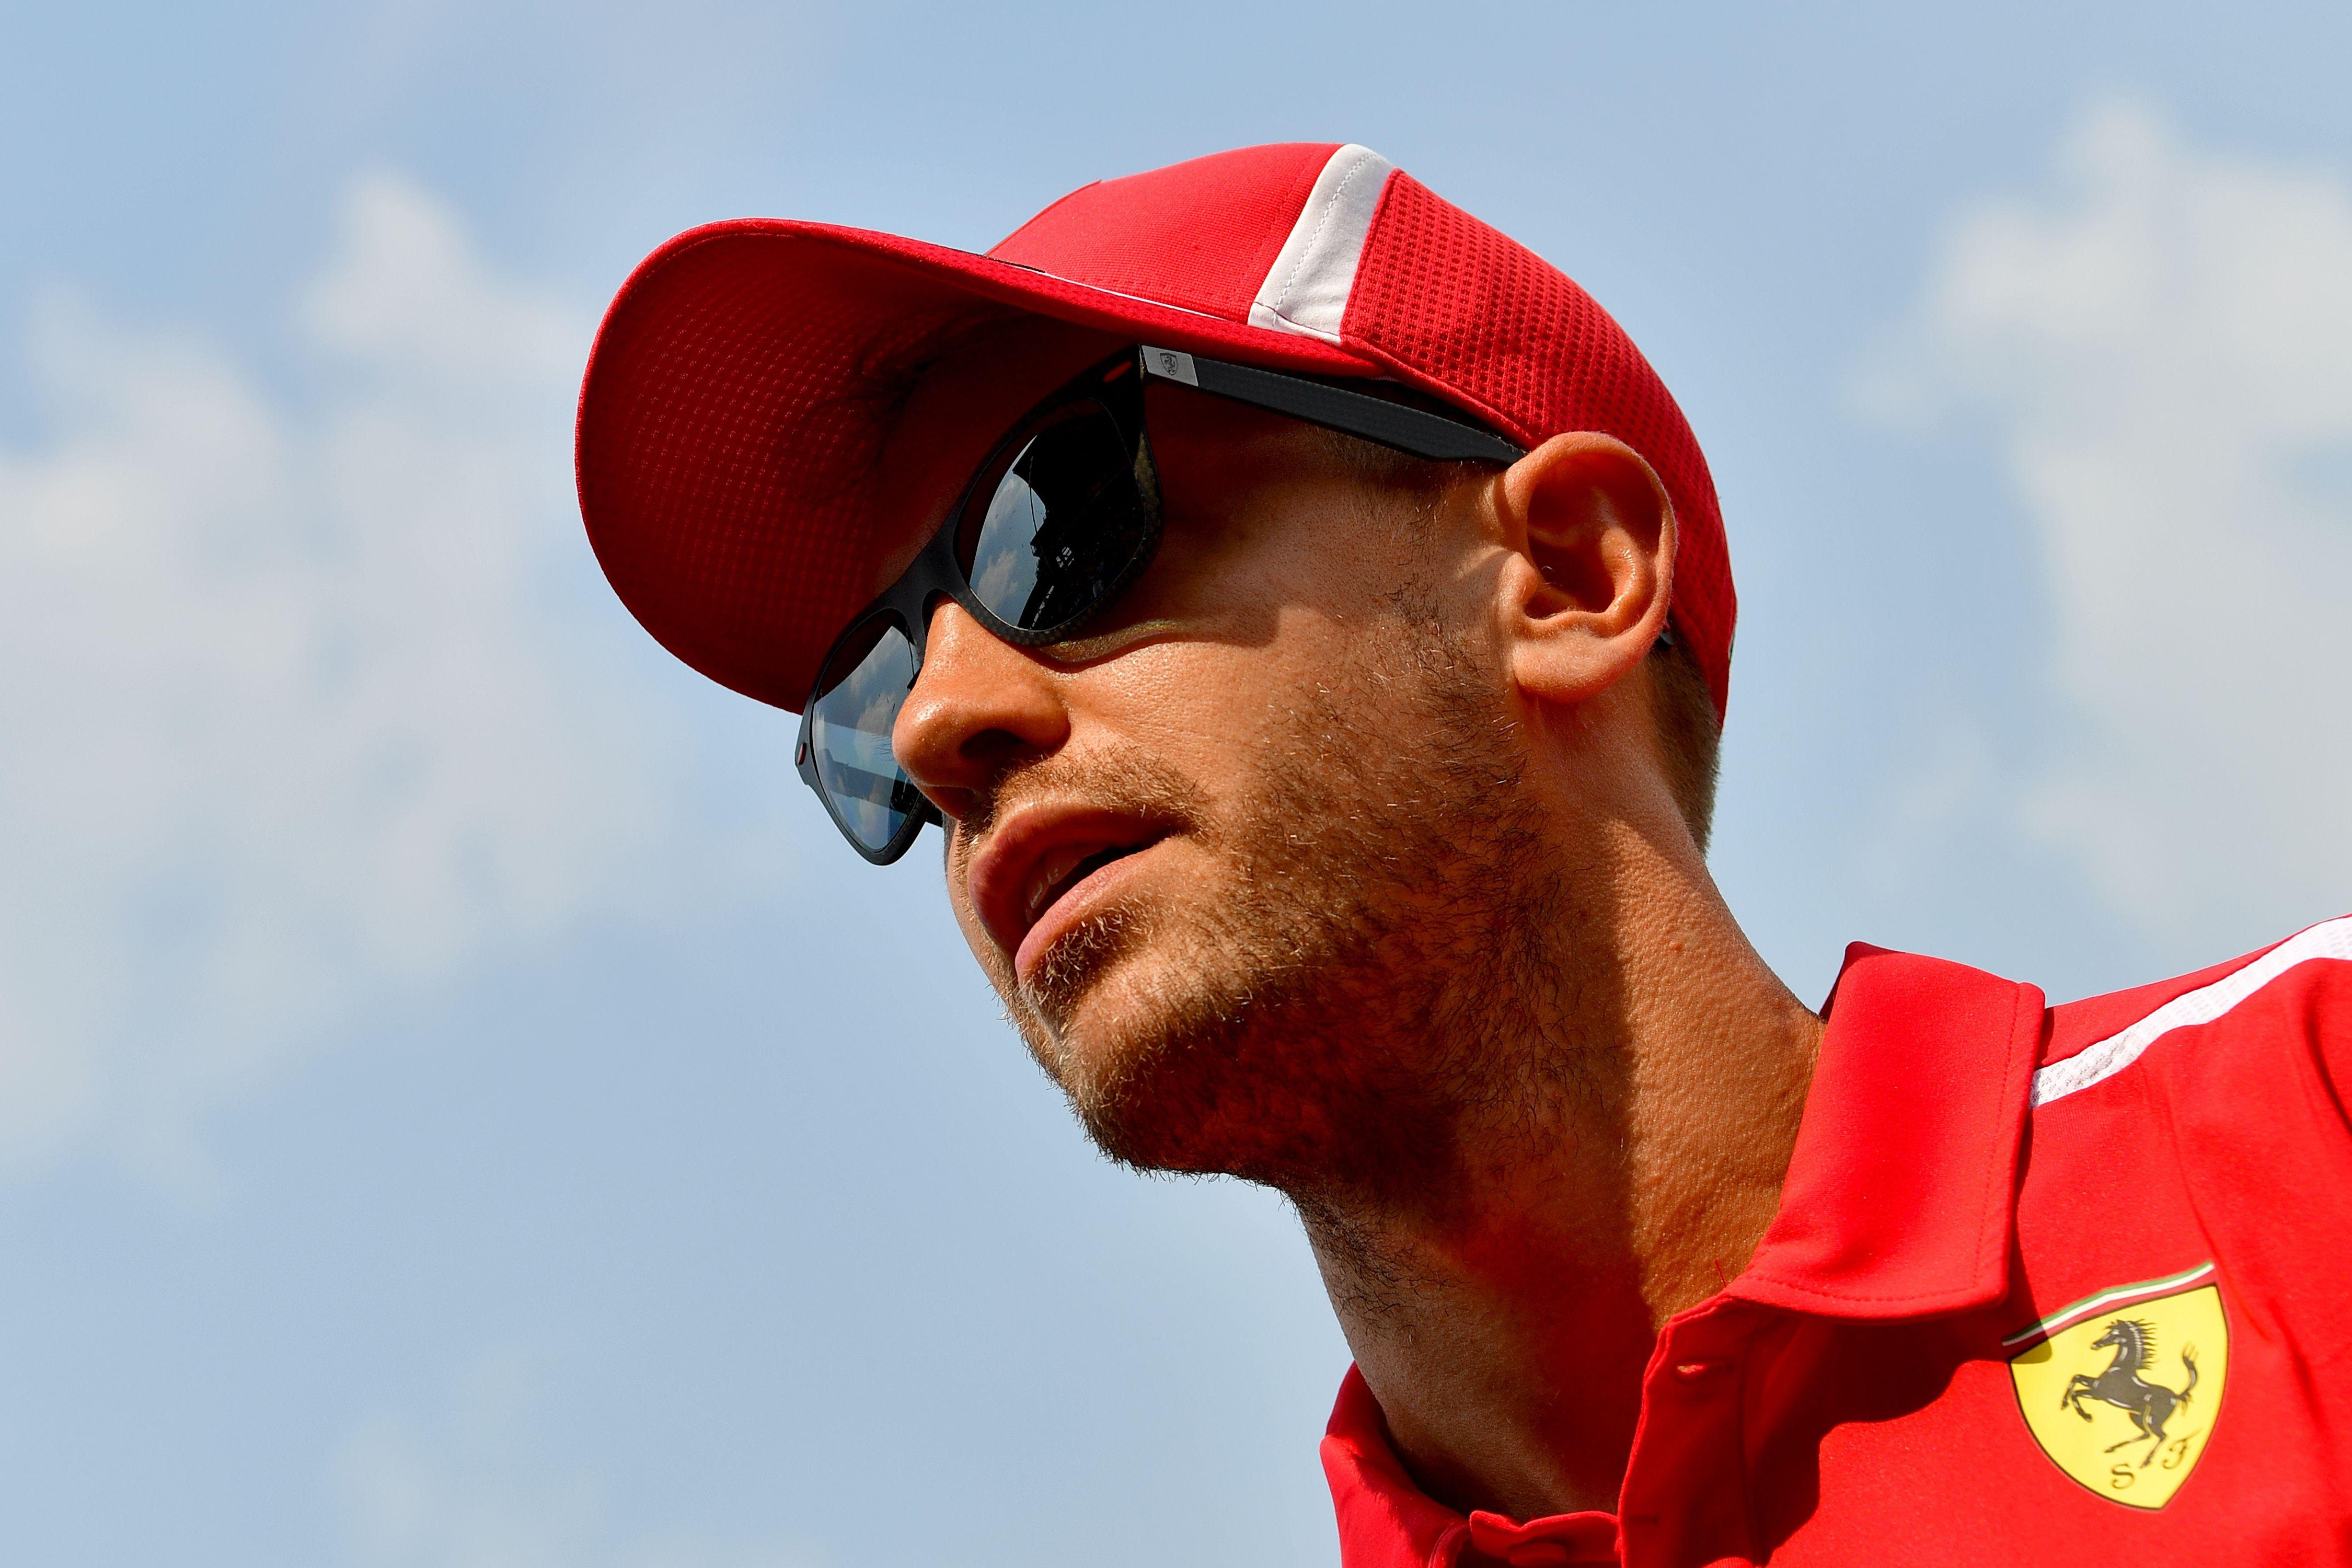 Vettel's crash sees the German relinquished his lead at the top of the Drivers' Championships